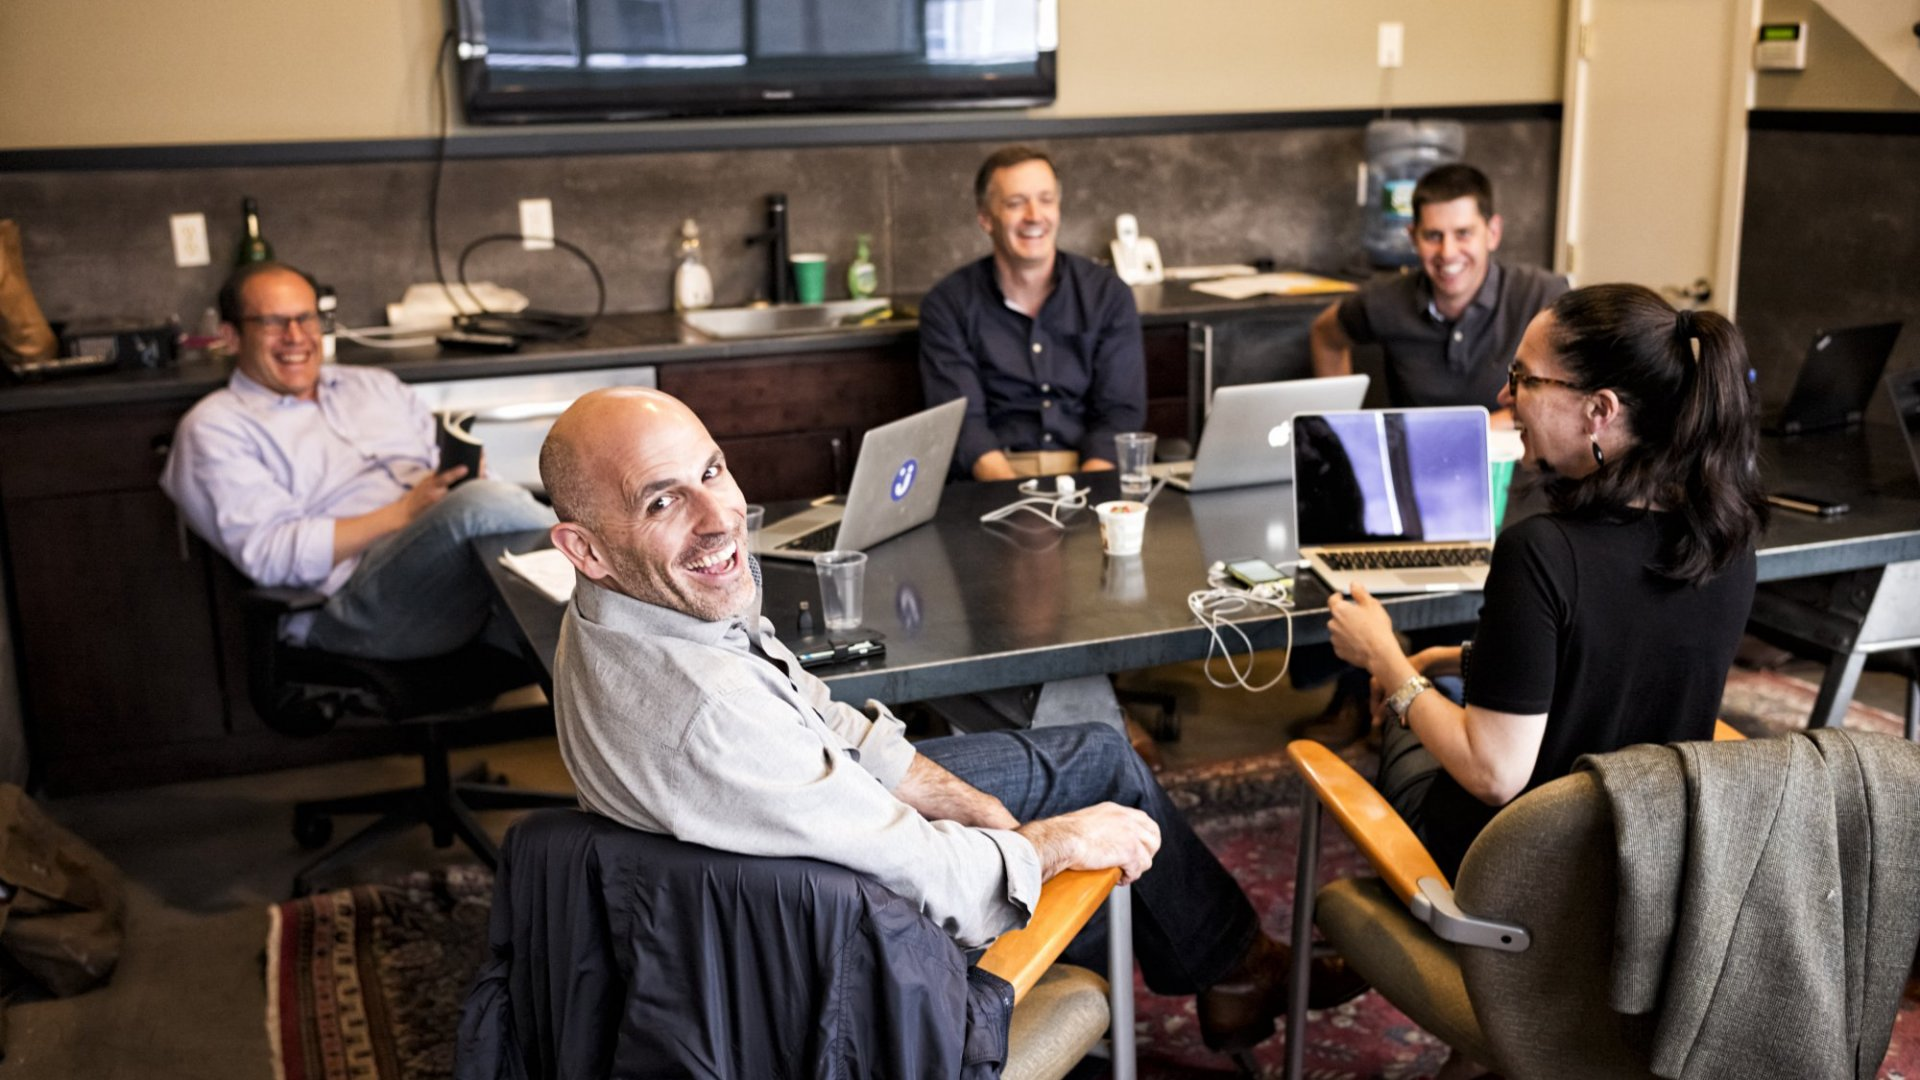 Marc Lore, CEO of new e-commerce site jet.com and his team smile at the photographer during the meeting in the conference room at jet.com headquarter on Apr. 28, 2015 in Montclair, NJ.  (Photo by Shin Woong-jae/For the Washington Post)